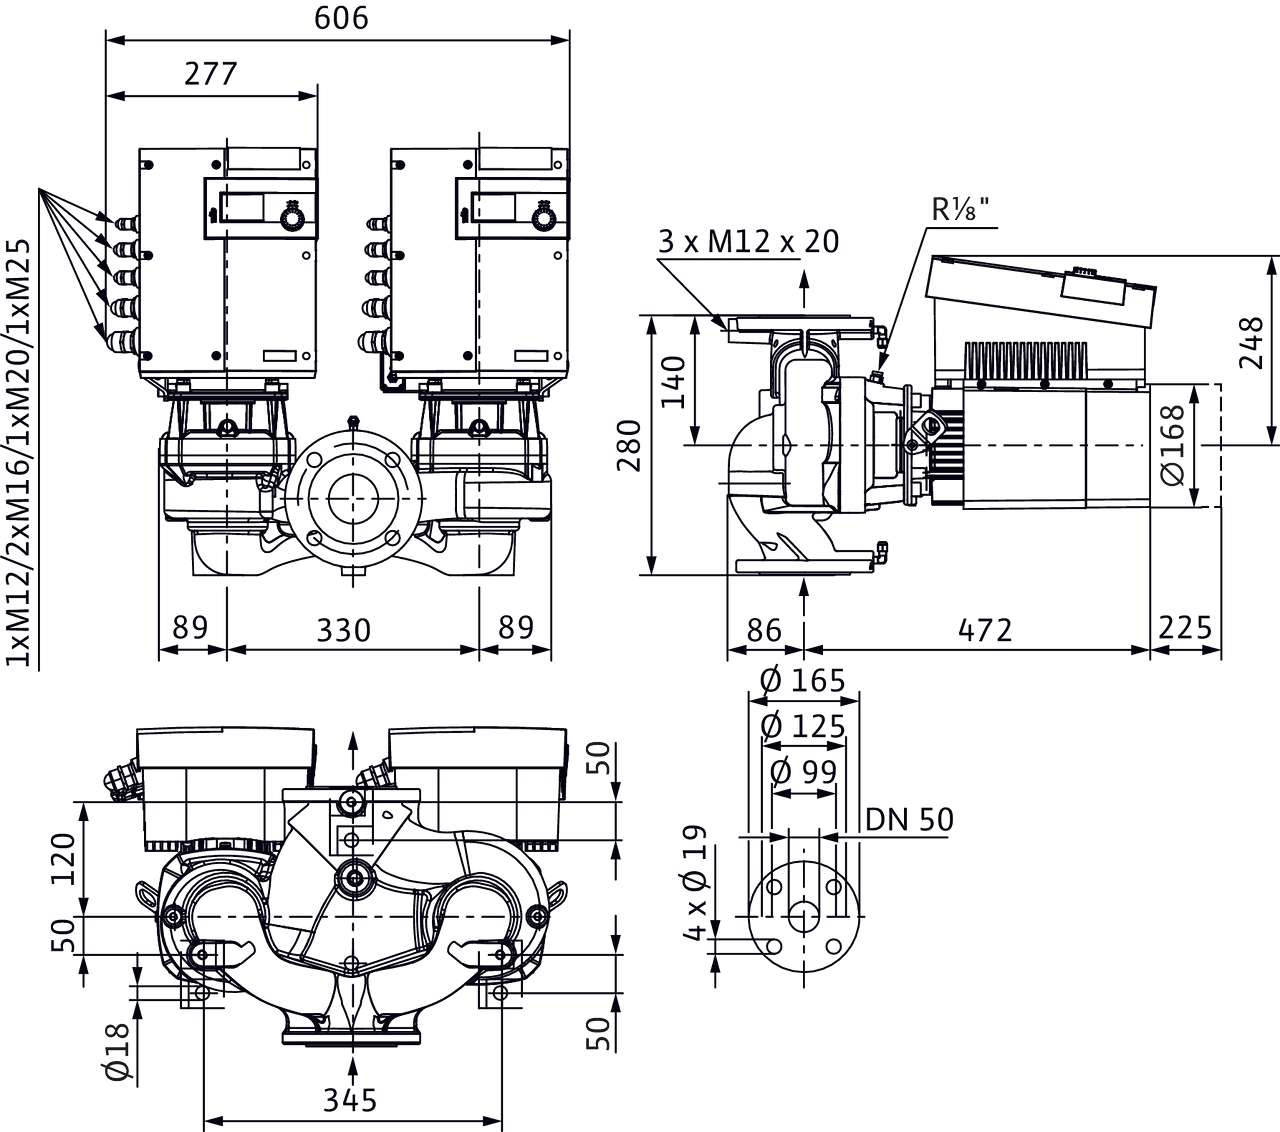 Stratos Giga D 50 1 44 38 Wilo Mercedes Benz 190e Wiring Diagram Filetype Pdf 32